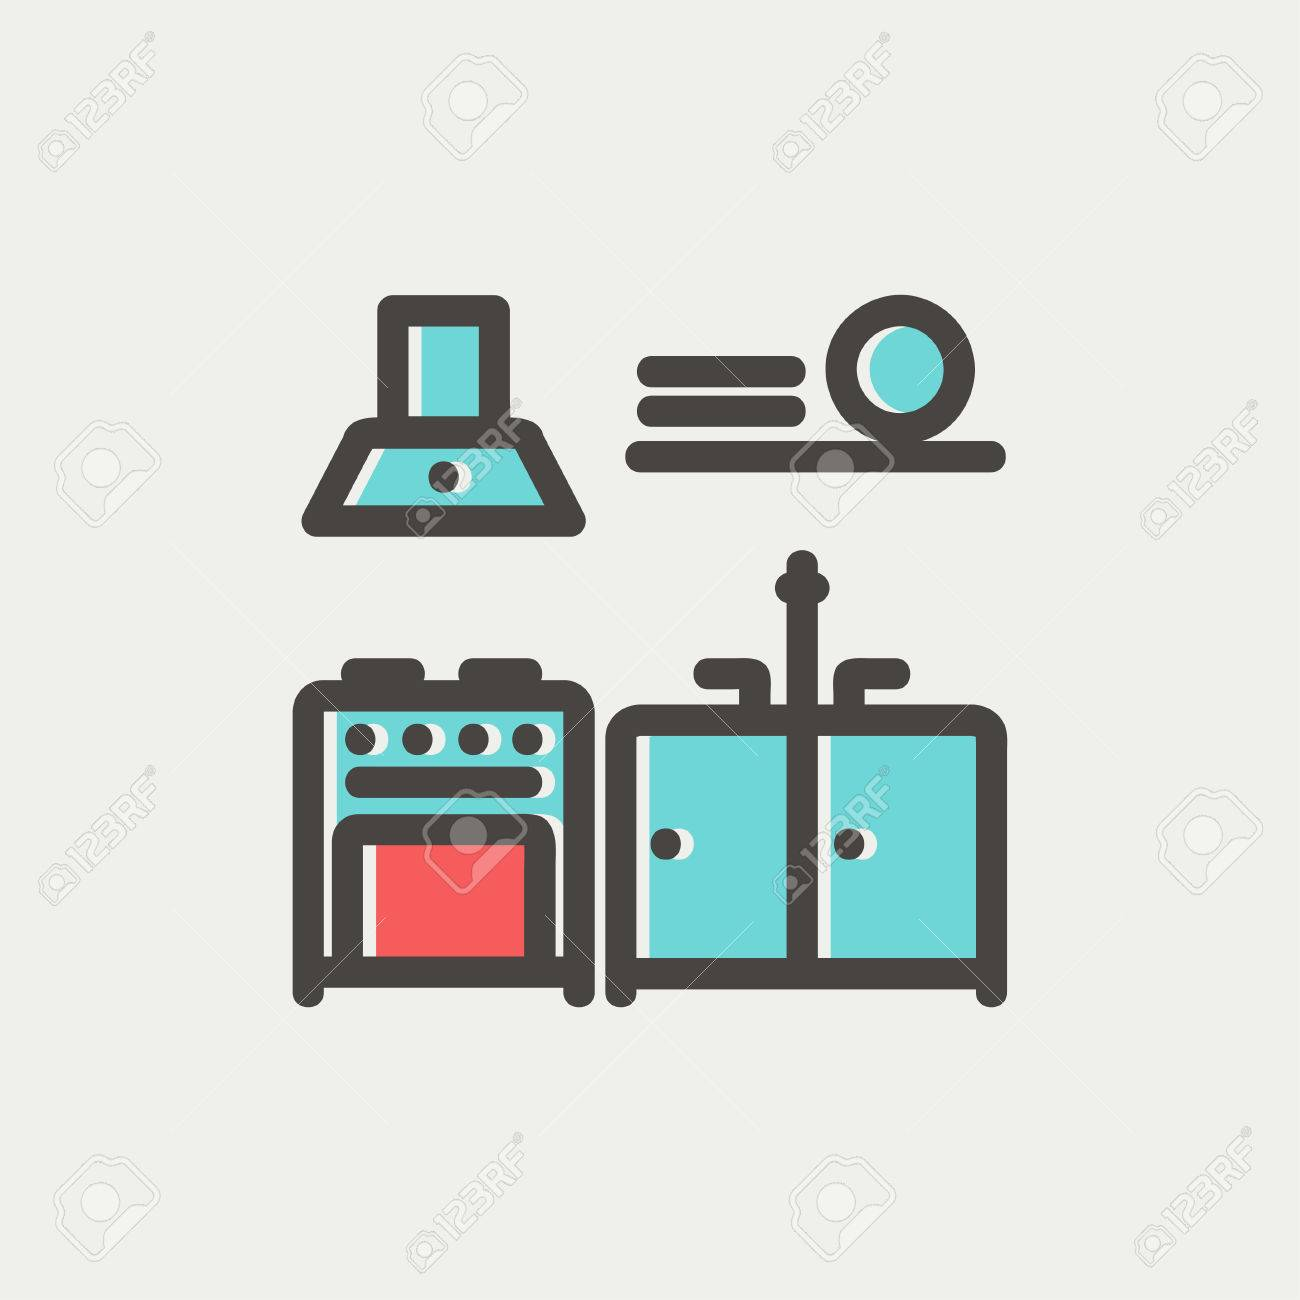 icon kitchen design. kitchen icon stock imagekitchen icon stock